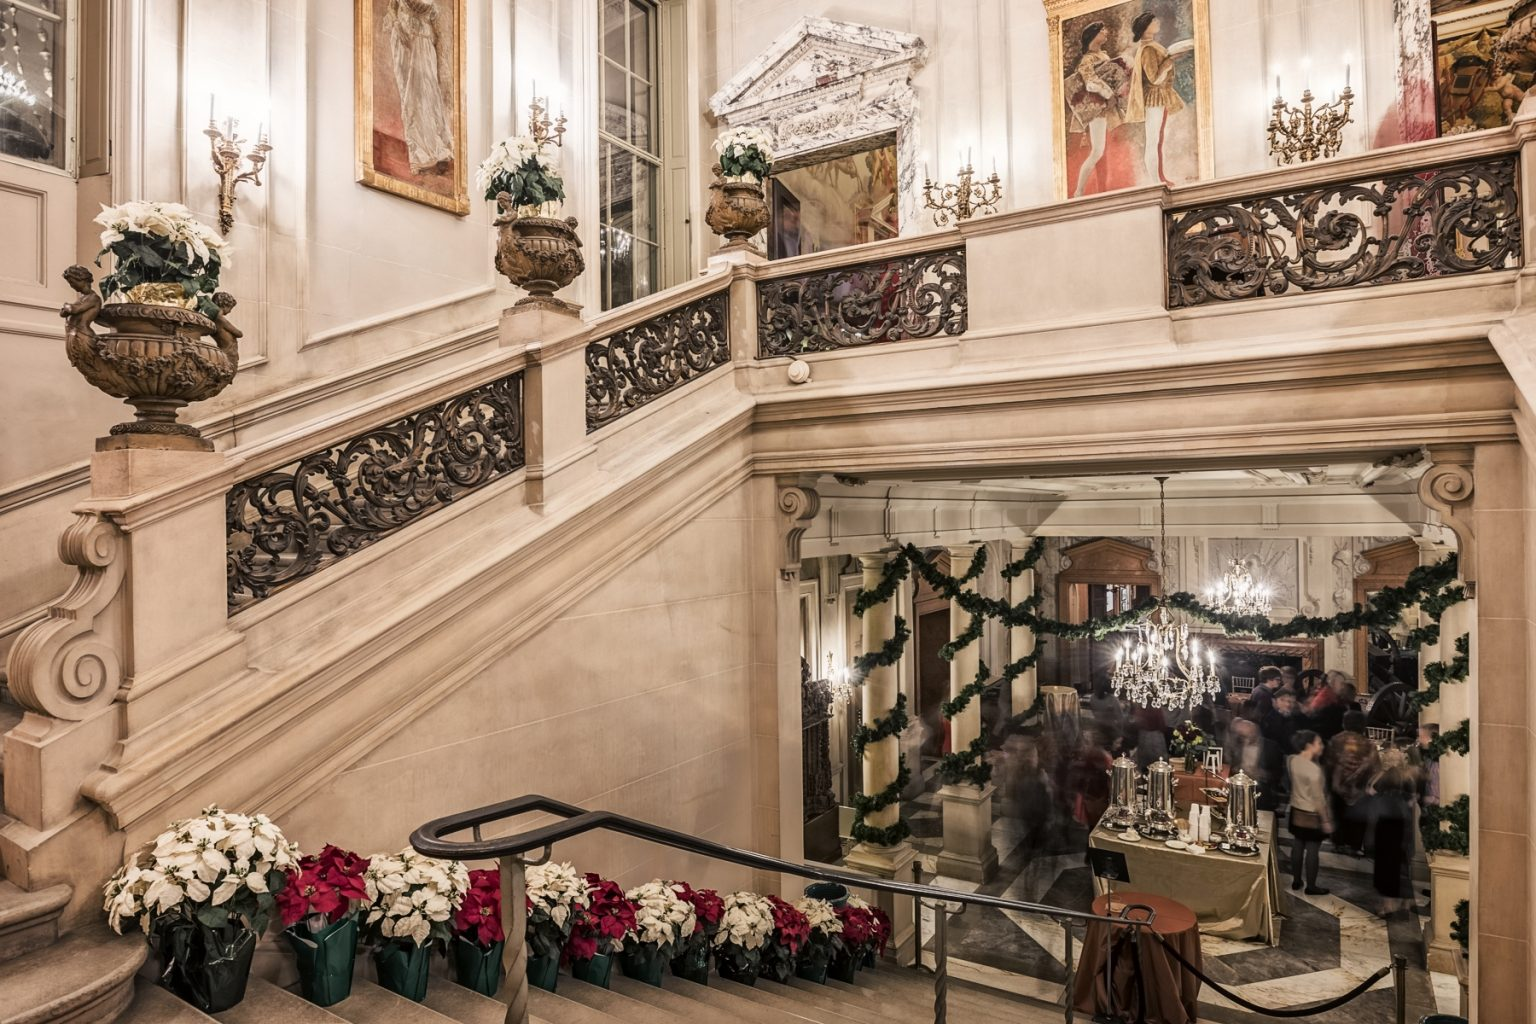 h2>Holiday reception in Great Stair Hall</h2>